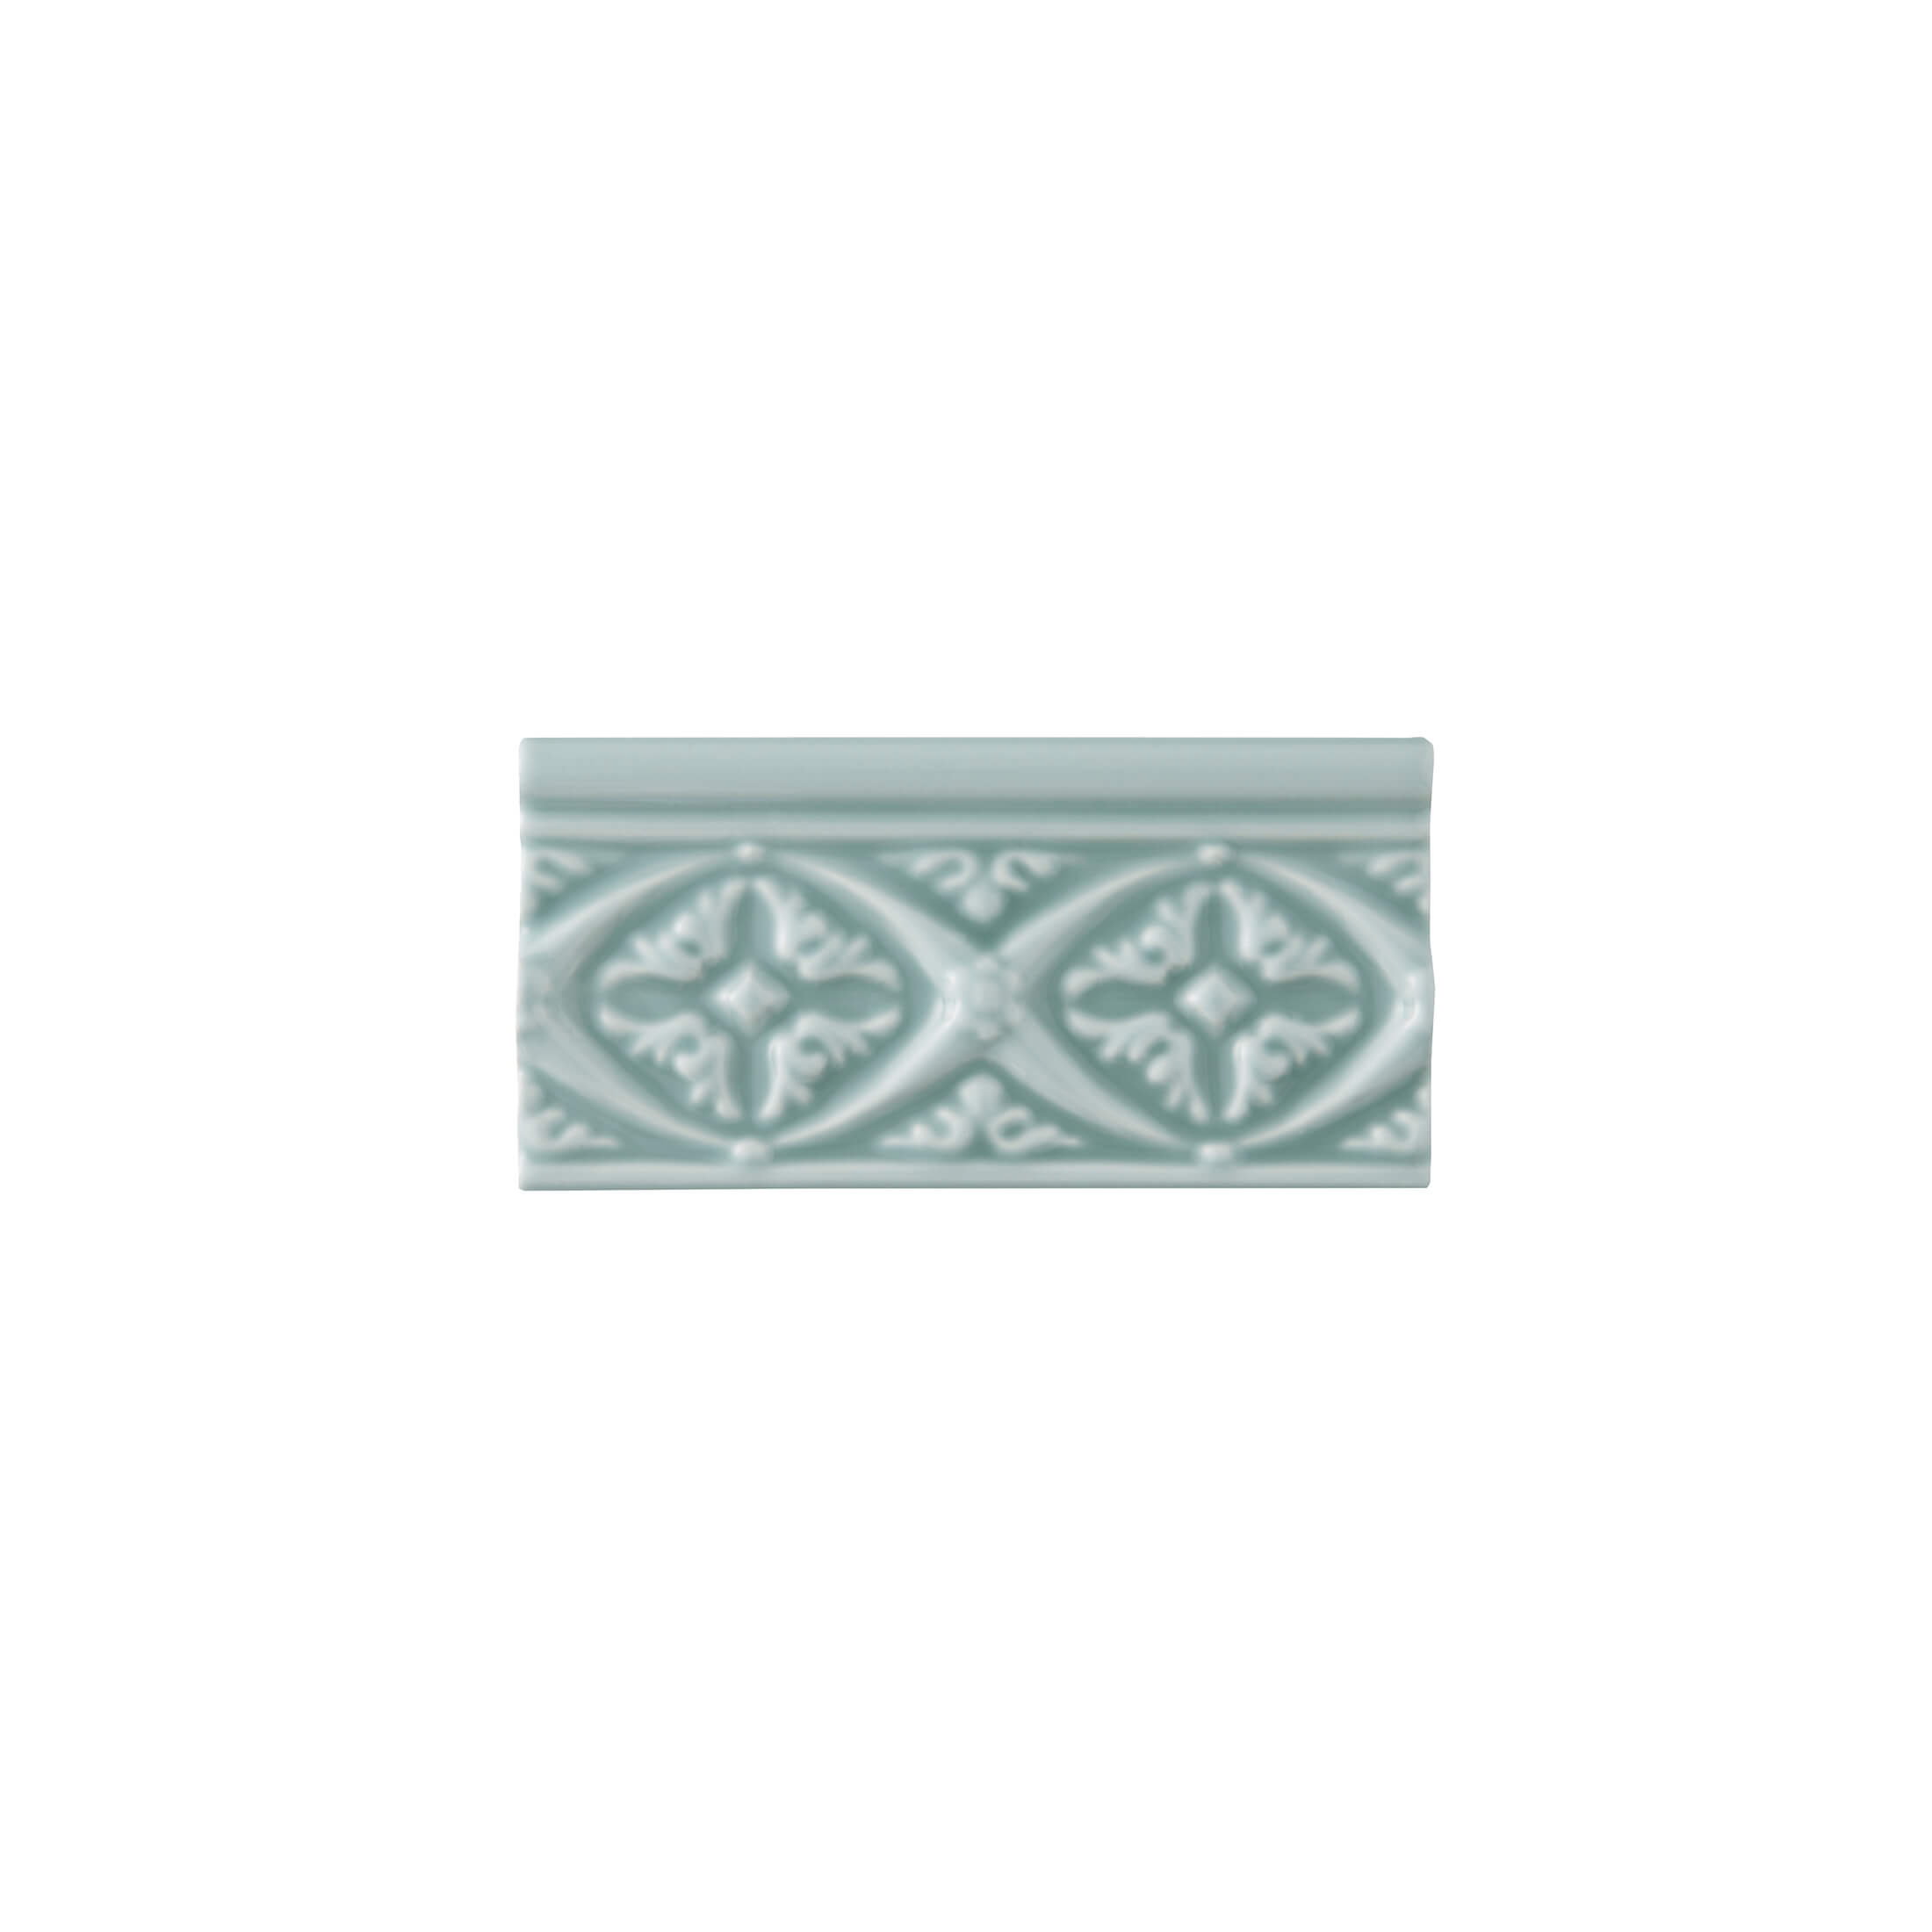 ADEX-ADNE4146-RELIEVE-BIZANTINO  -7.5 cm-15 cm-NERI>SEA GREEN